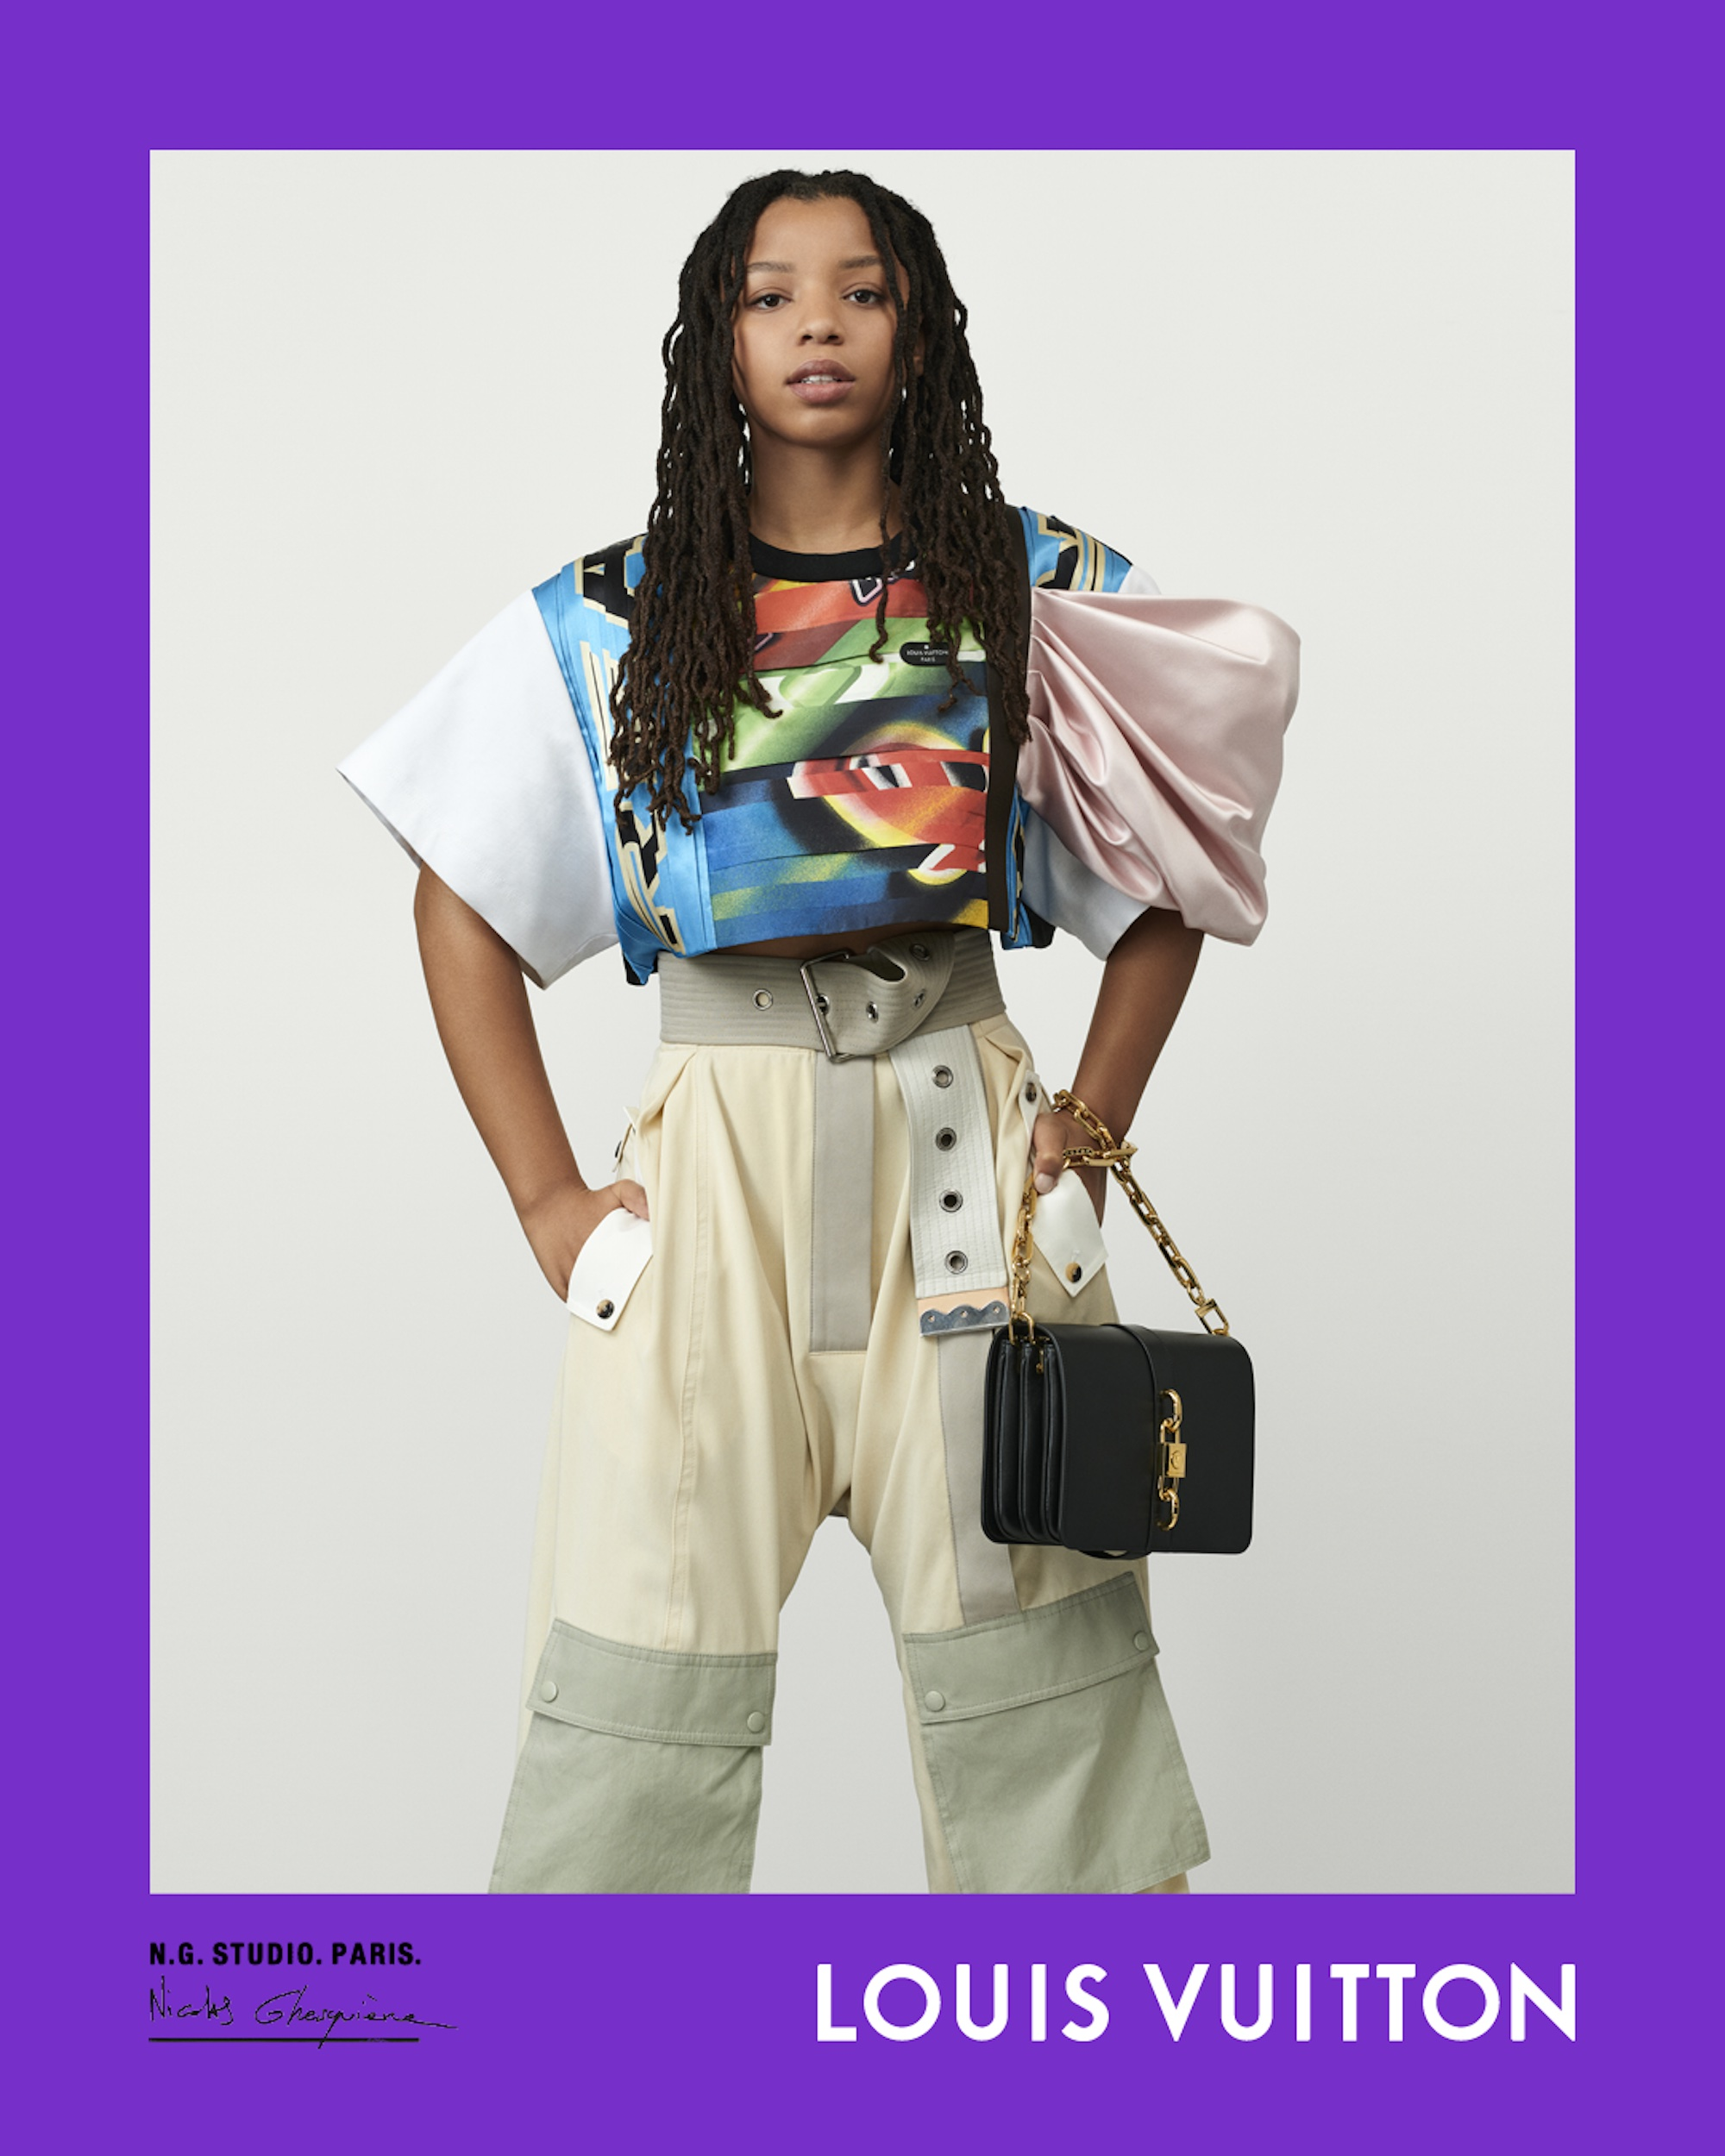 Louis Vuitton Spring Summer 2021 campaign, Nicolas Ghesquière, creative director, photographer, halle bailey